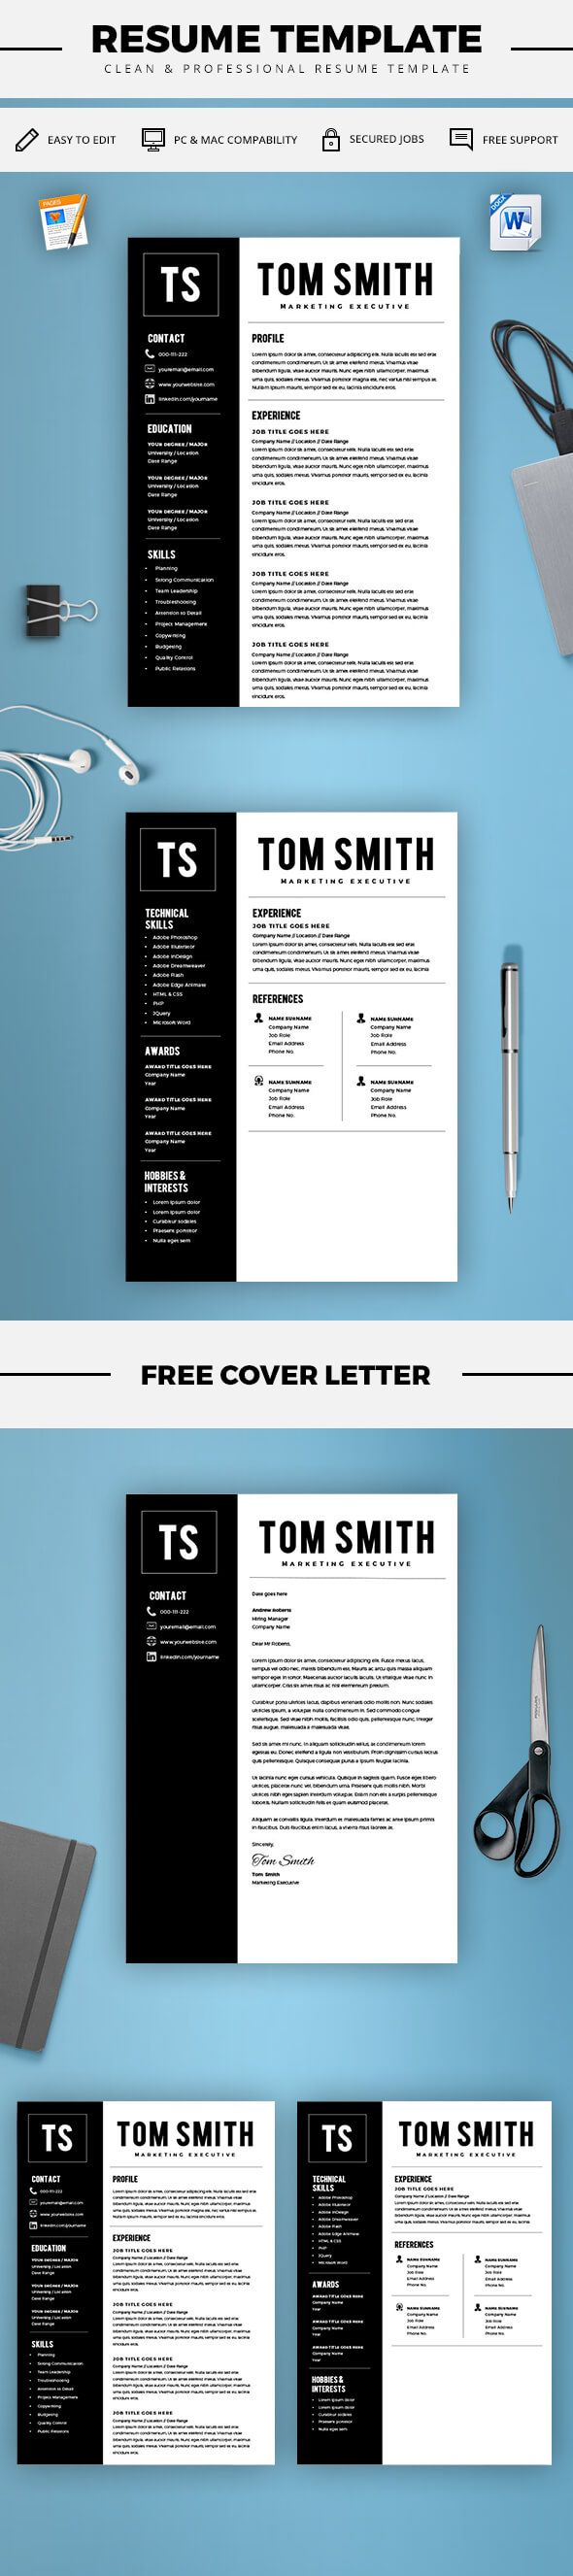 Famous 1 Page Resume Format Download Tiny 1 Page Resume Or 2 Rectangular 1 Year Experience Java Resume Format 11x17 Graph Paper Template Young 15 Year Old Funny Resume Black15 Year Old Student Resume 25  Best Ideas About Free Cv Template On Pinterest | Cv Resume ..